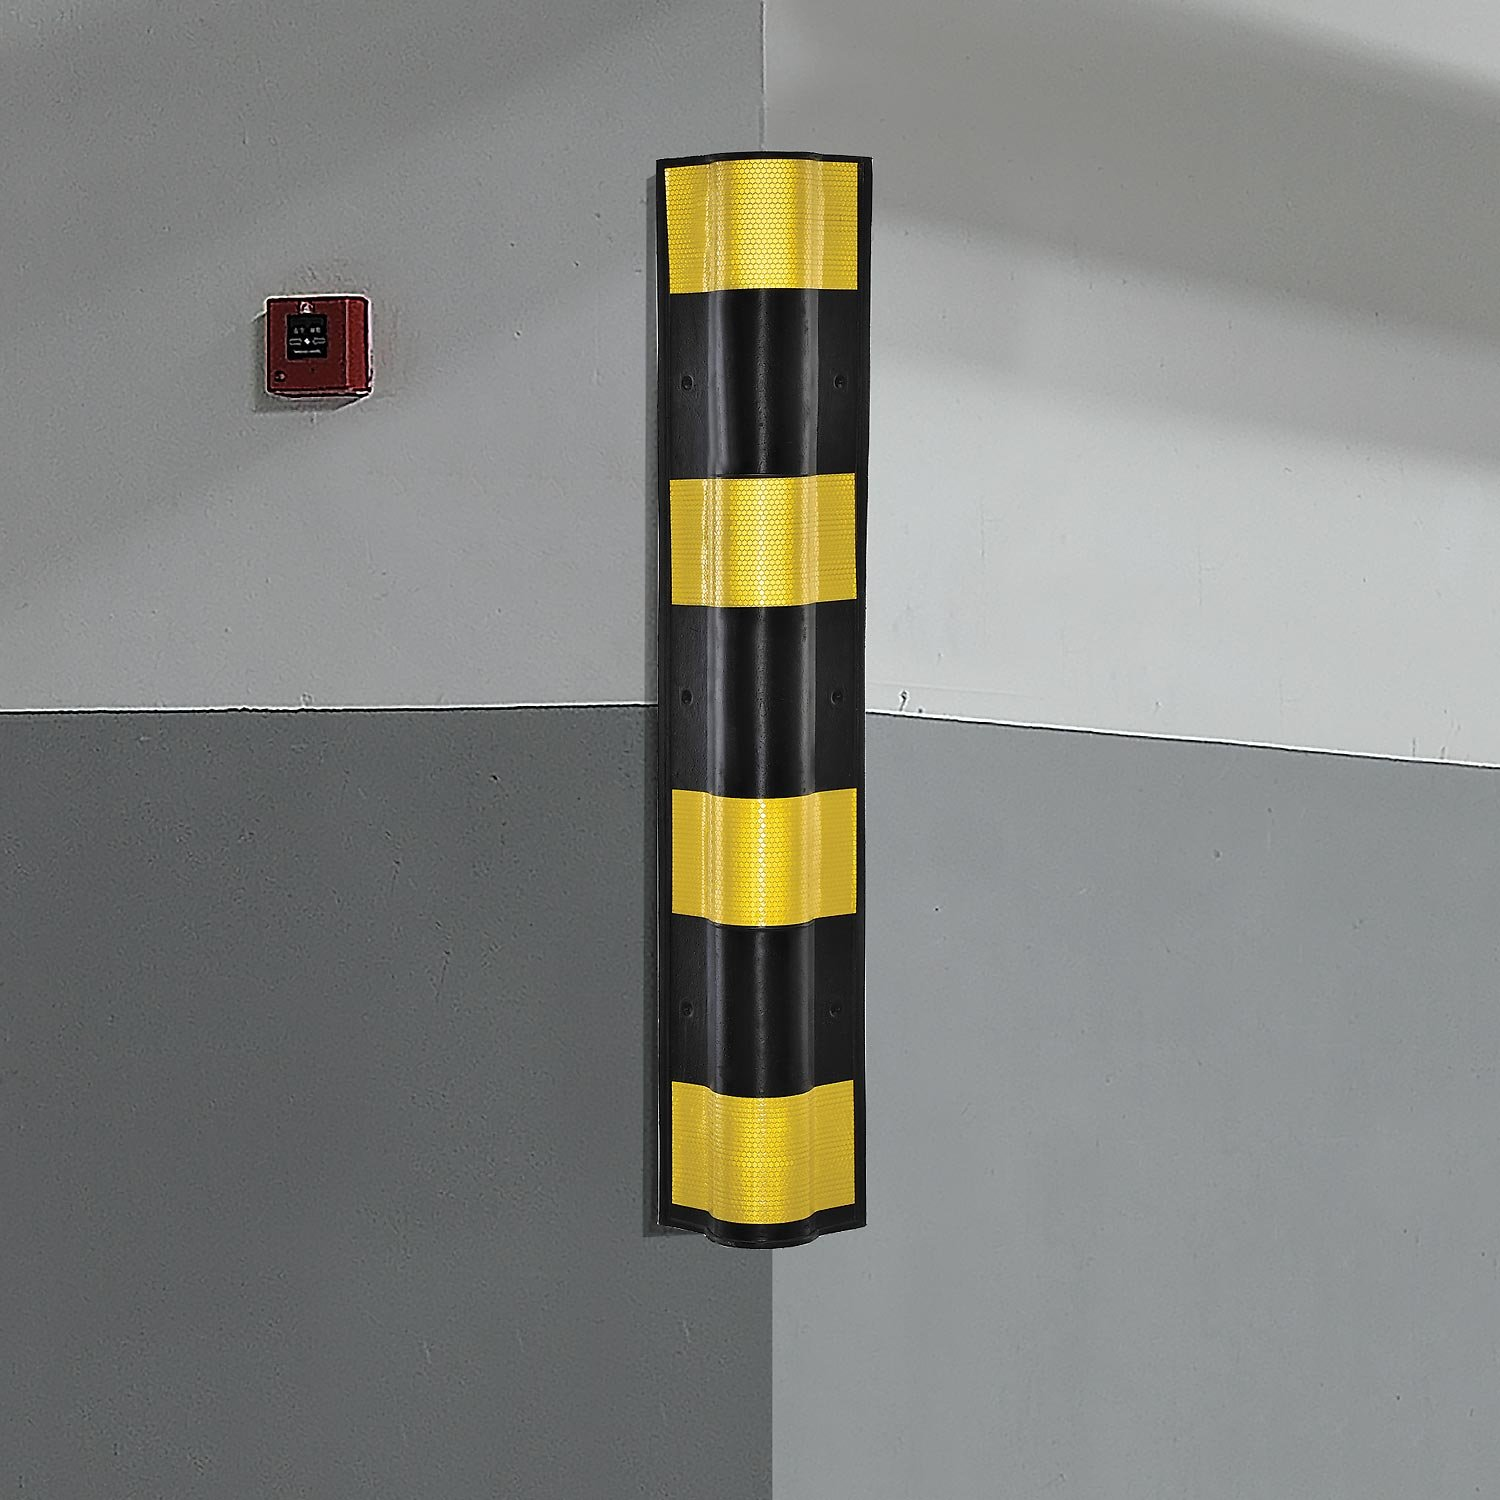 Electriduct Pair of Rubber Corner Guards 31'' for Parking Columns and Garage Walls Round Edge by Electriduct (Image #3)